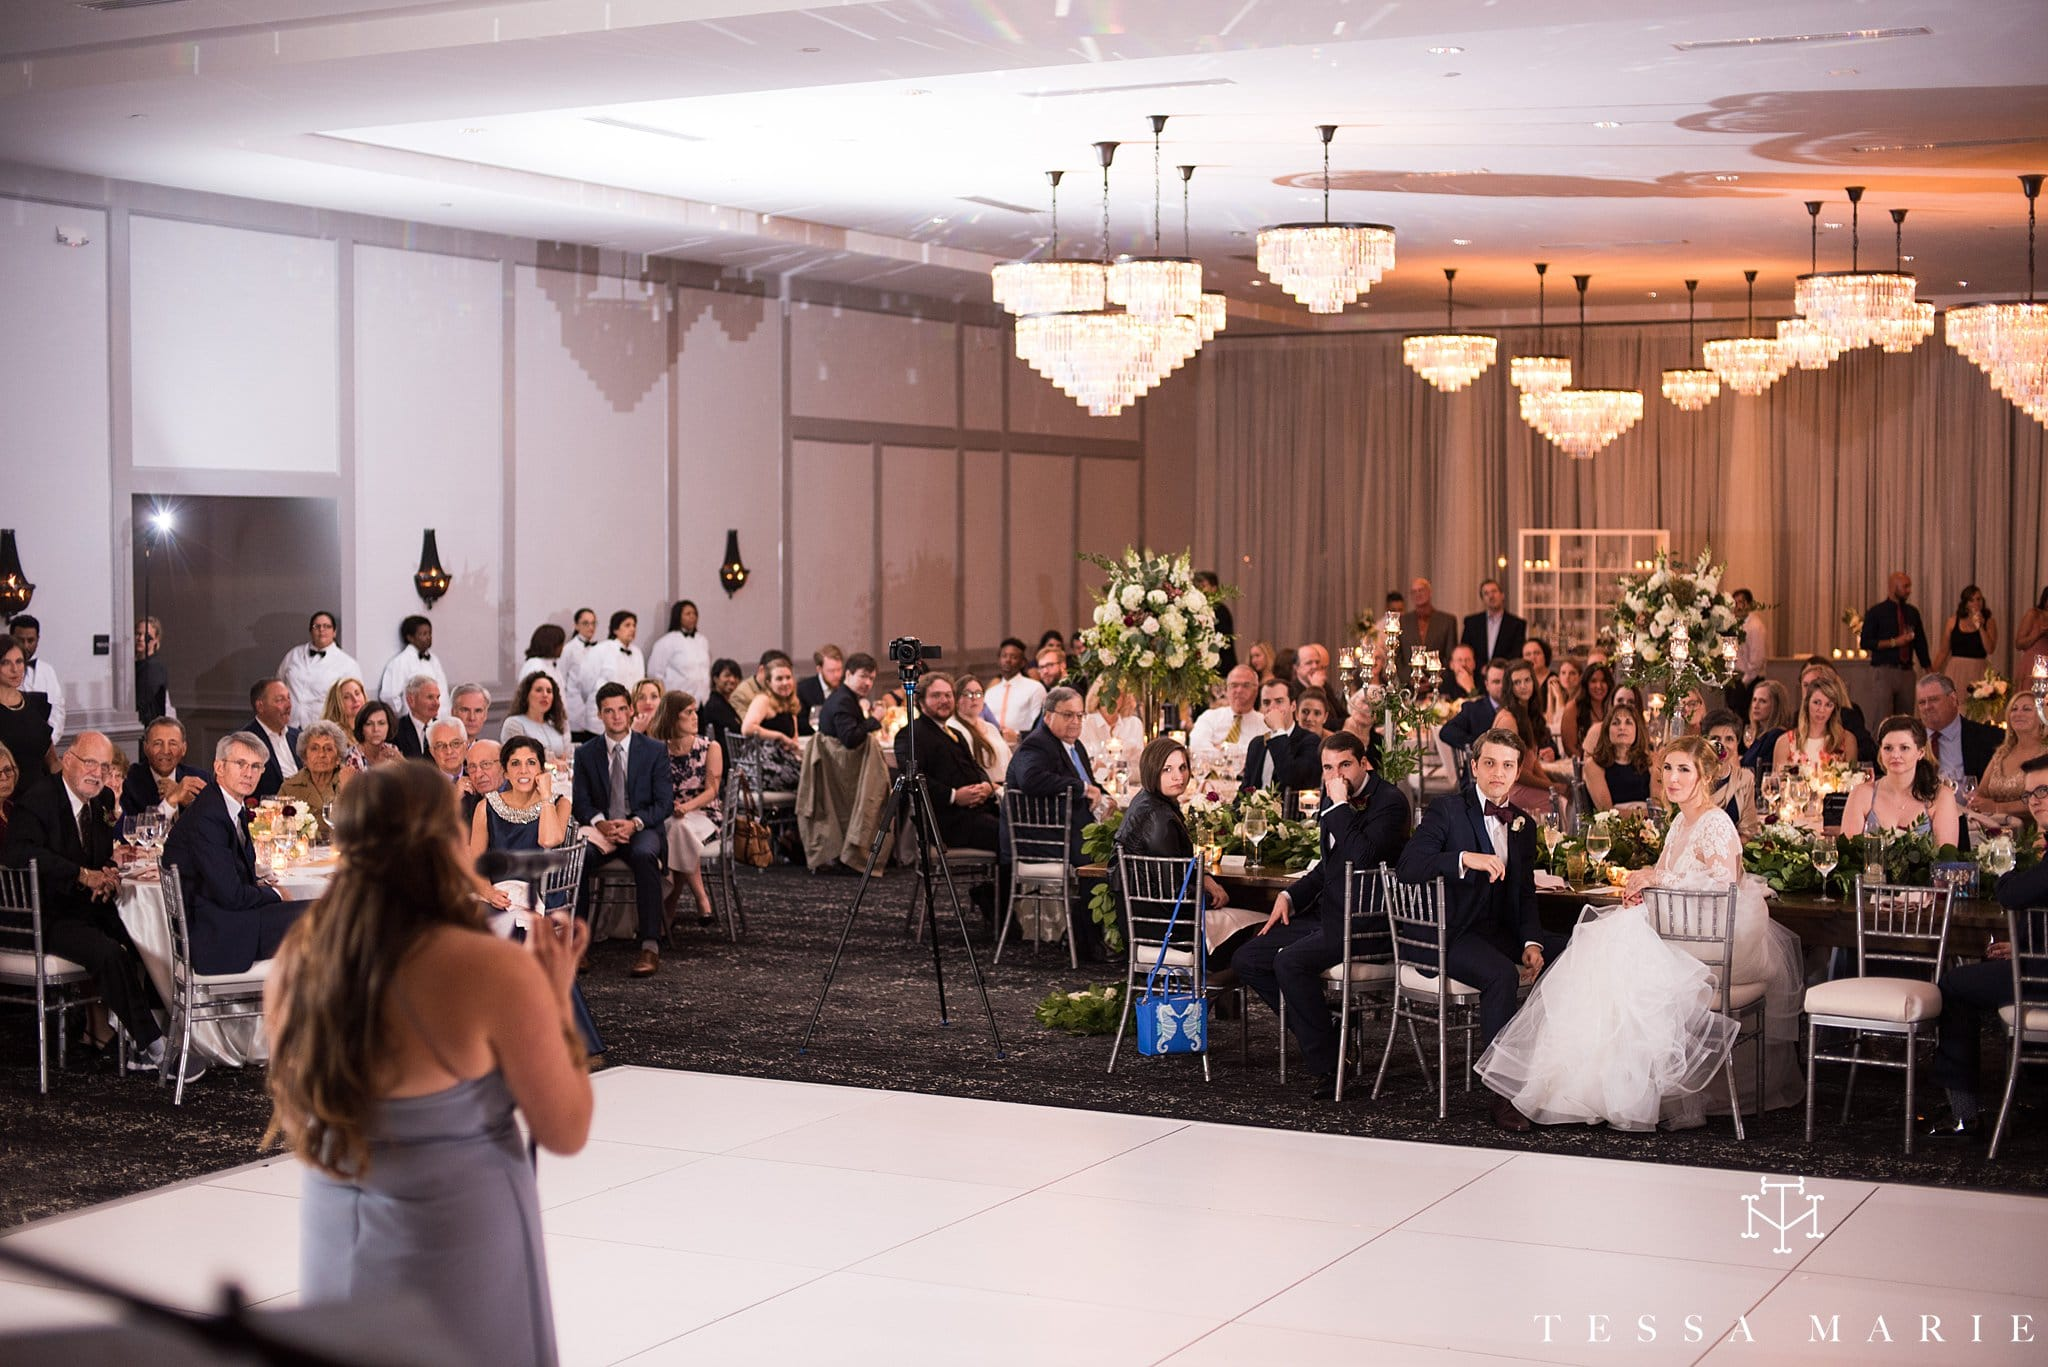 tessa_marie_weddings_estate_wedding_flourish_wedding_legendary_events_wedding_angels_bride_groom_wedding_Day_rainy_wedding_day_fall_october_wedding_atlantas_best_wedding_professionals_0021.jpg